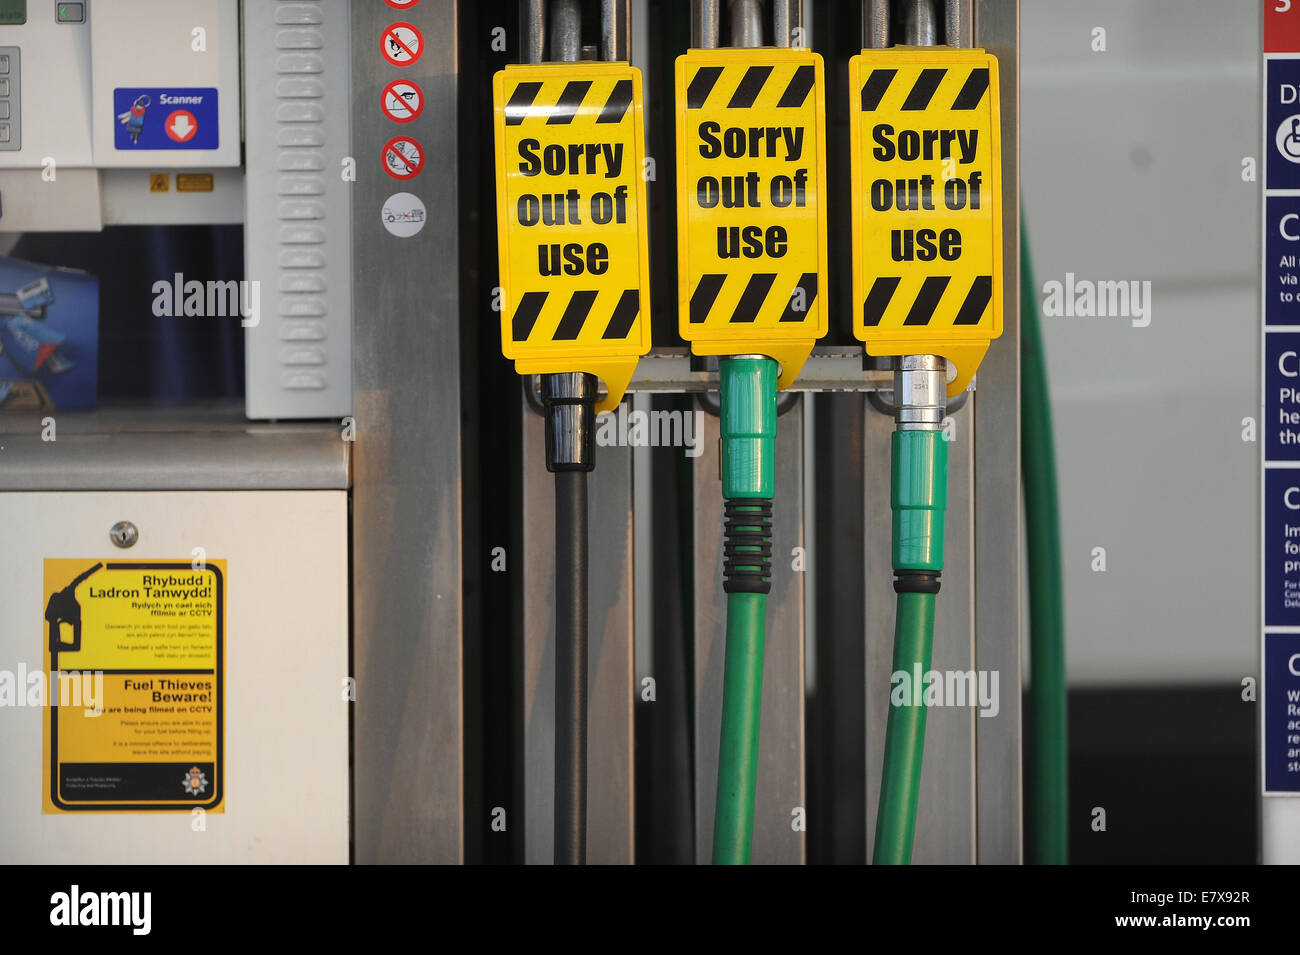 Fuel pumps at a petrol gas station that has run out of petrol and diesel during a fuel shortage. - Stock Image